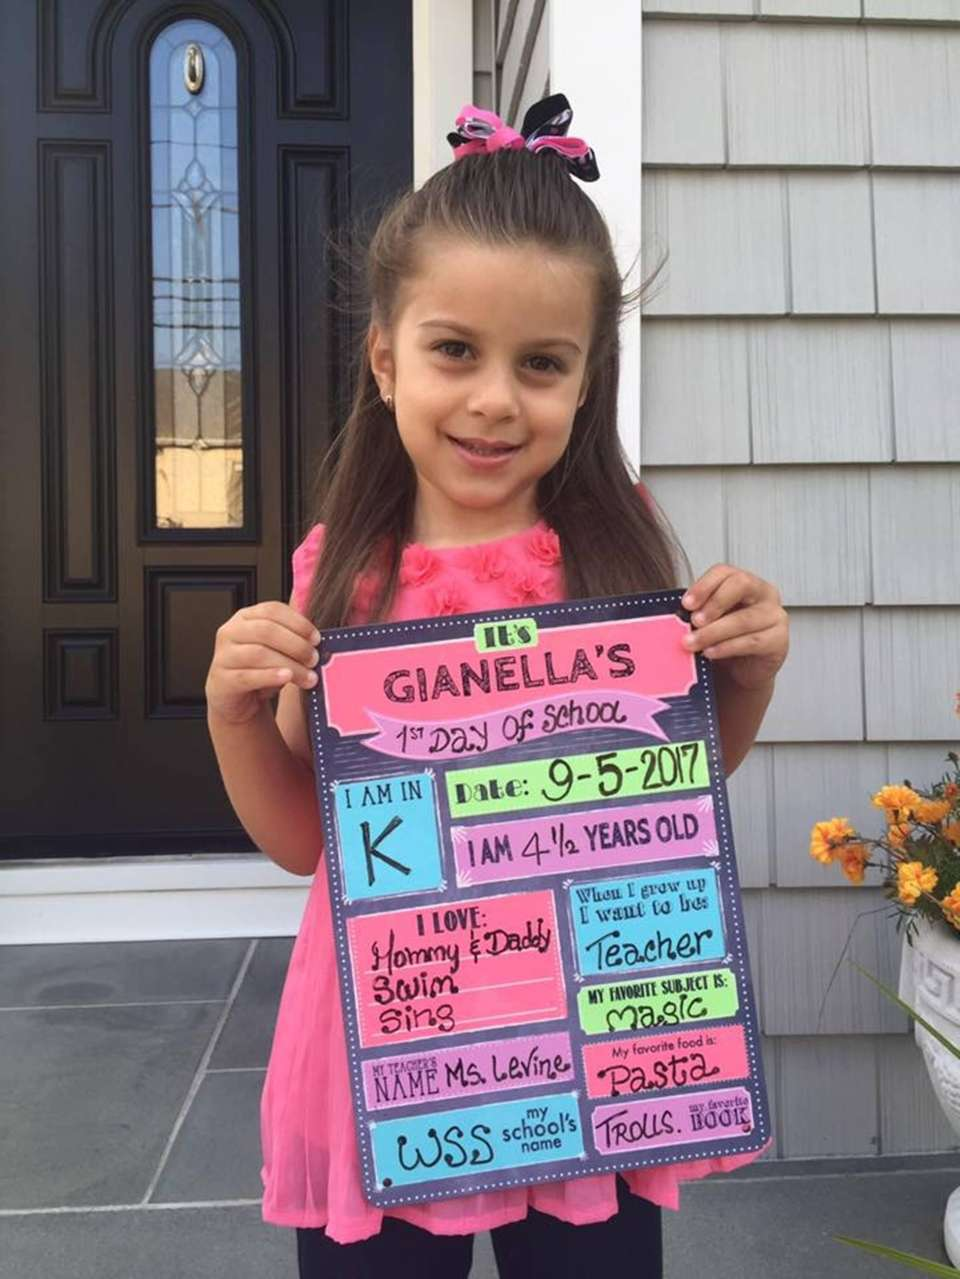 Gianella is ready for her first Day in